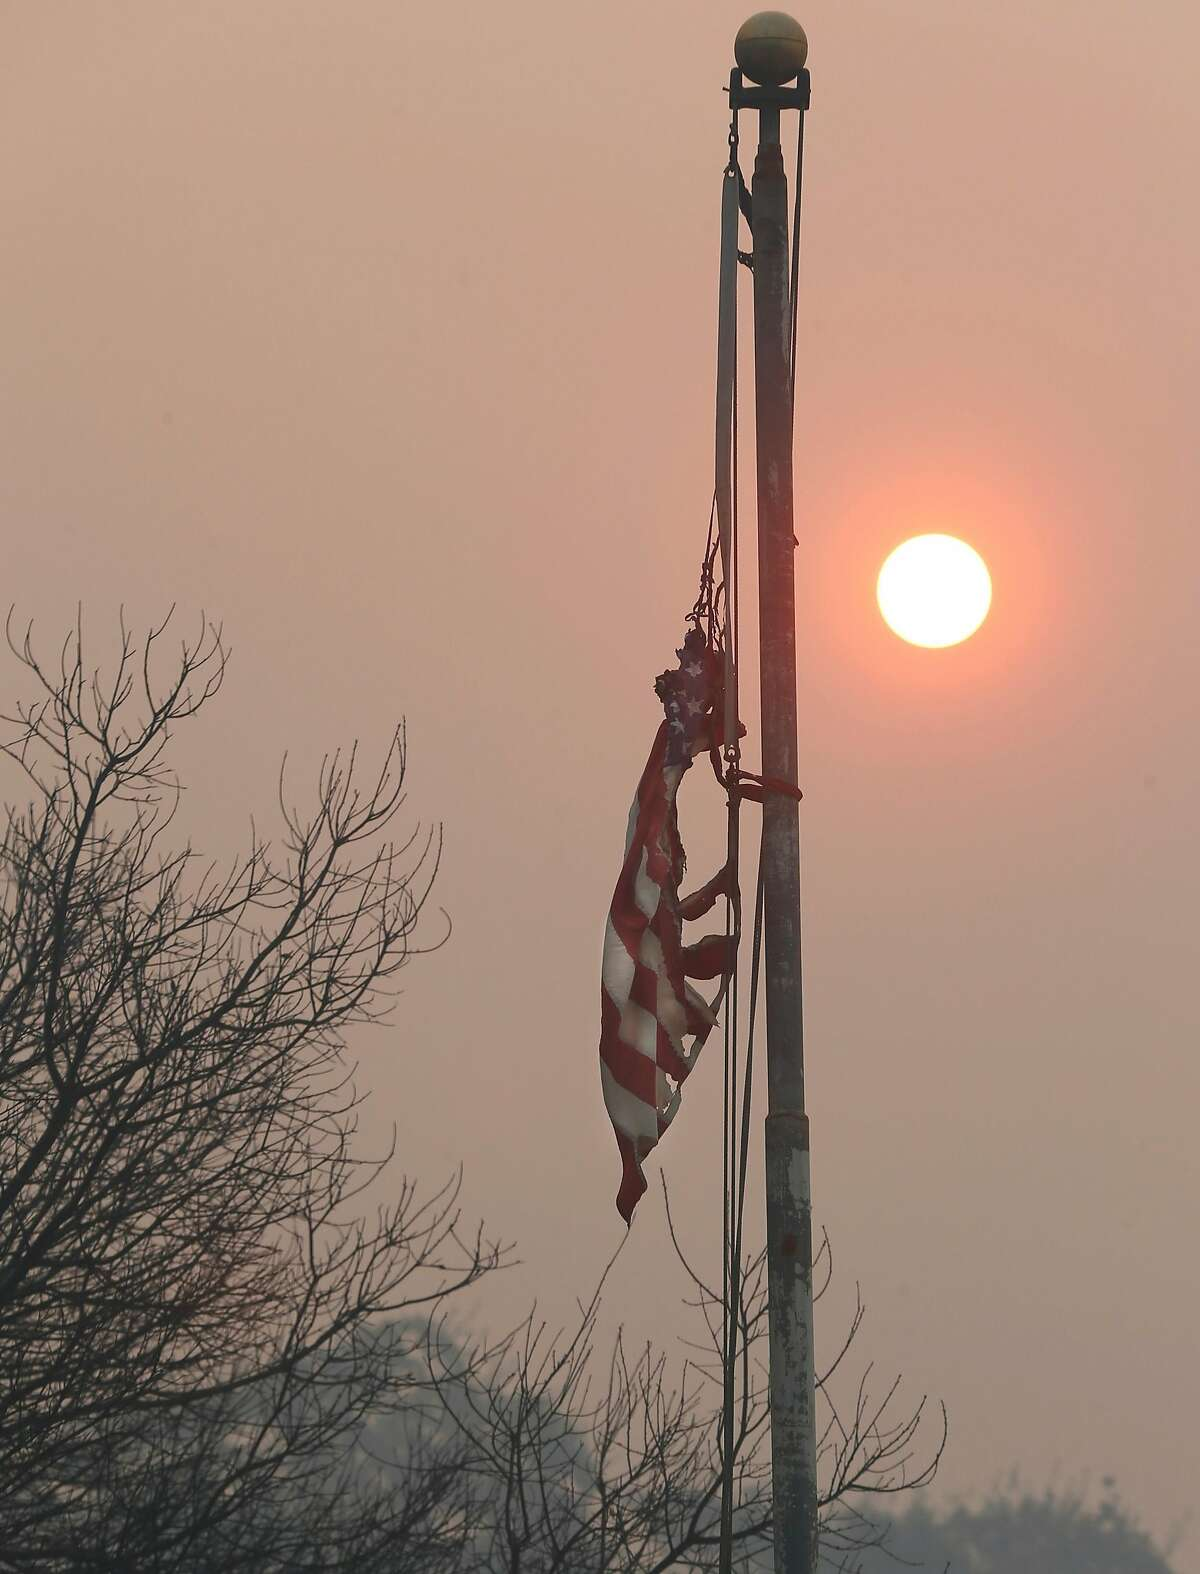 A singed American flag still hangs from a pole at a home on Geysers Road as the Kincade Fire continues to burn near Geyserville, Calif. on Friday, Oct. 25, 2019.